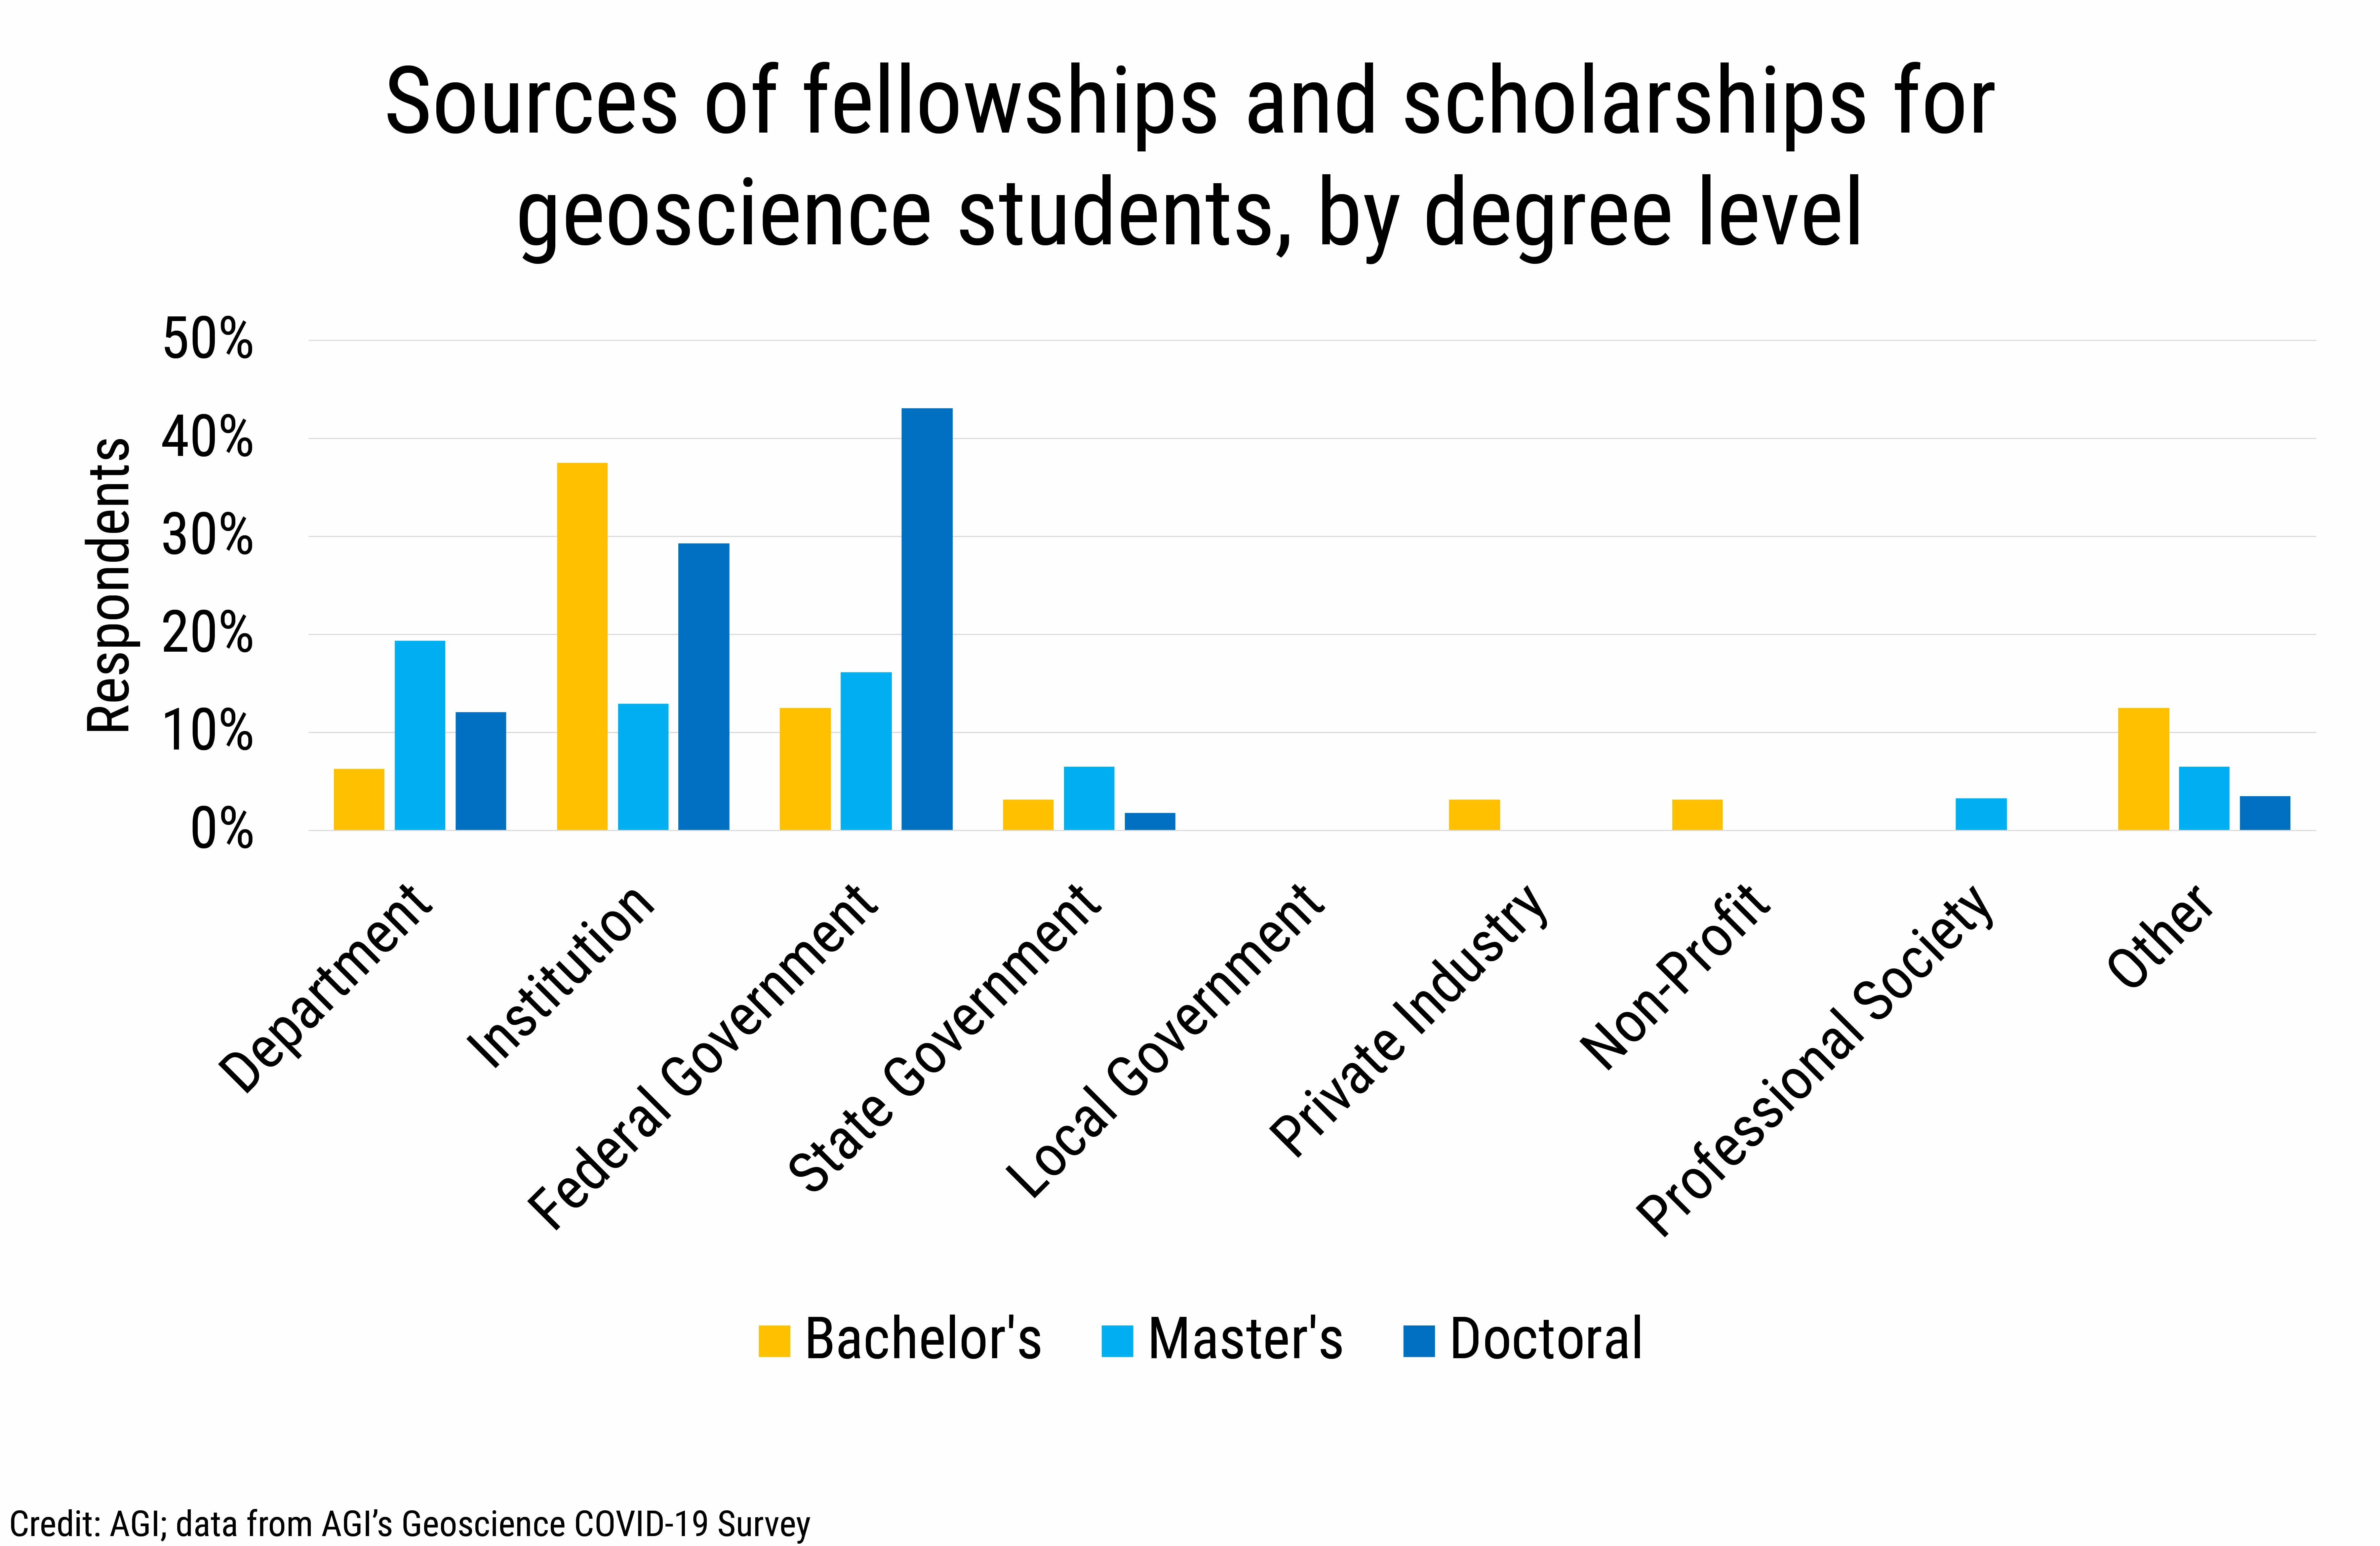 DB_2020-032 chart 01: Sources of fellowships and scholarships for geoscience students, by degree level (Credit: AGI; data from AGI's Geoscience COVID-19 Survey)